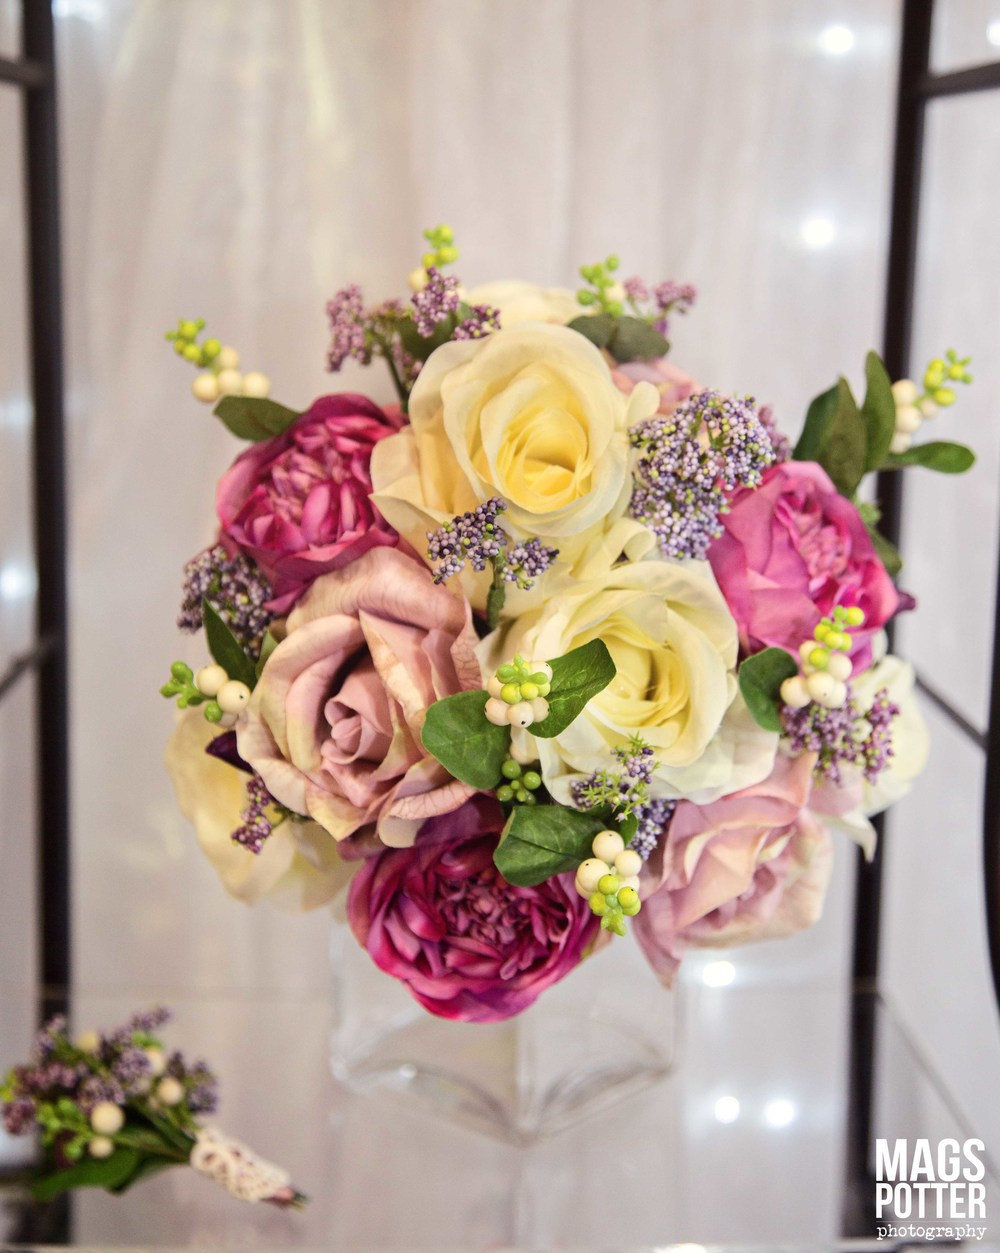 Brides Handtied Bouquet With Lilac & Cream Roses,   Hot Pink Peonies & Hedgerow Berries